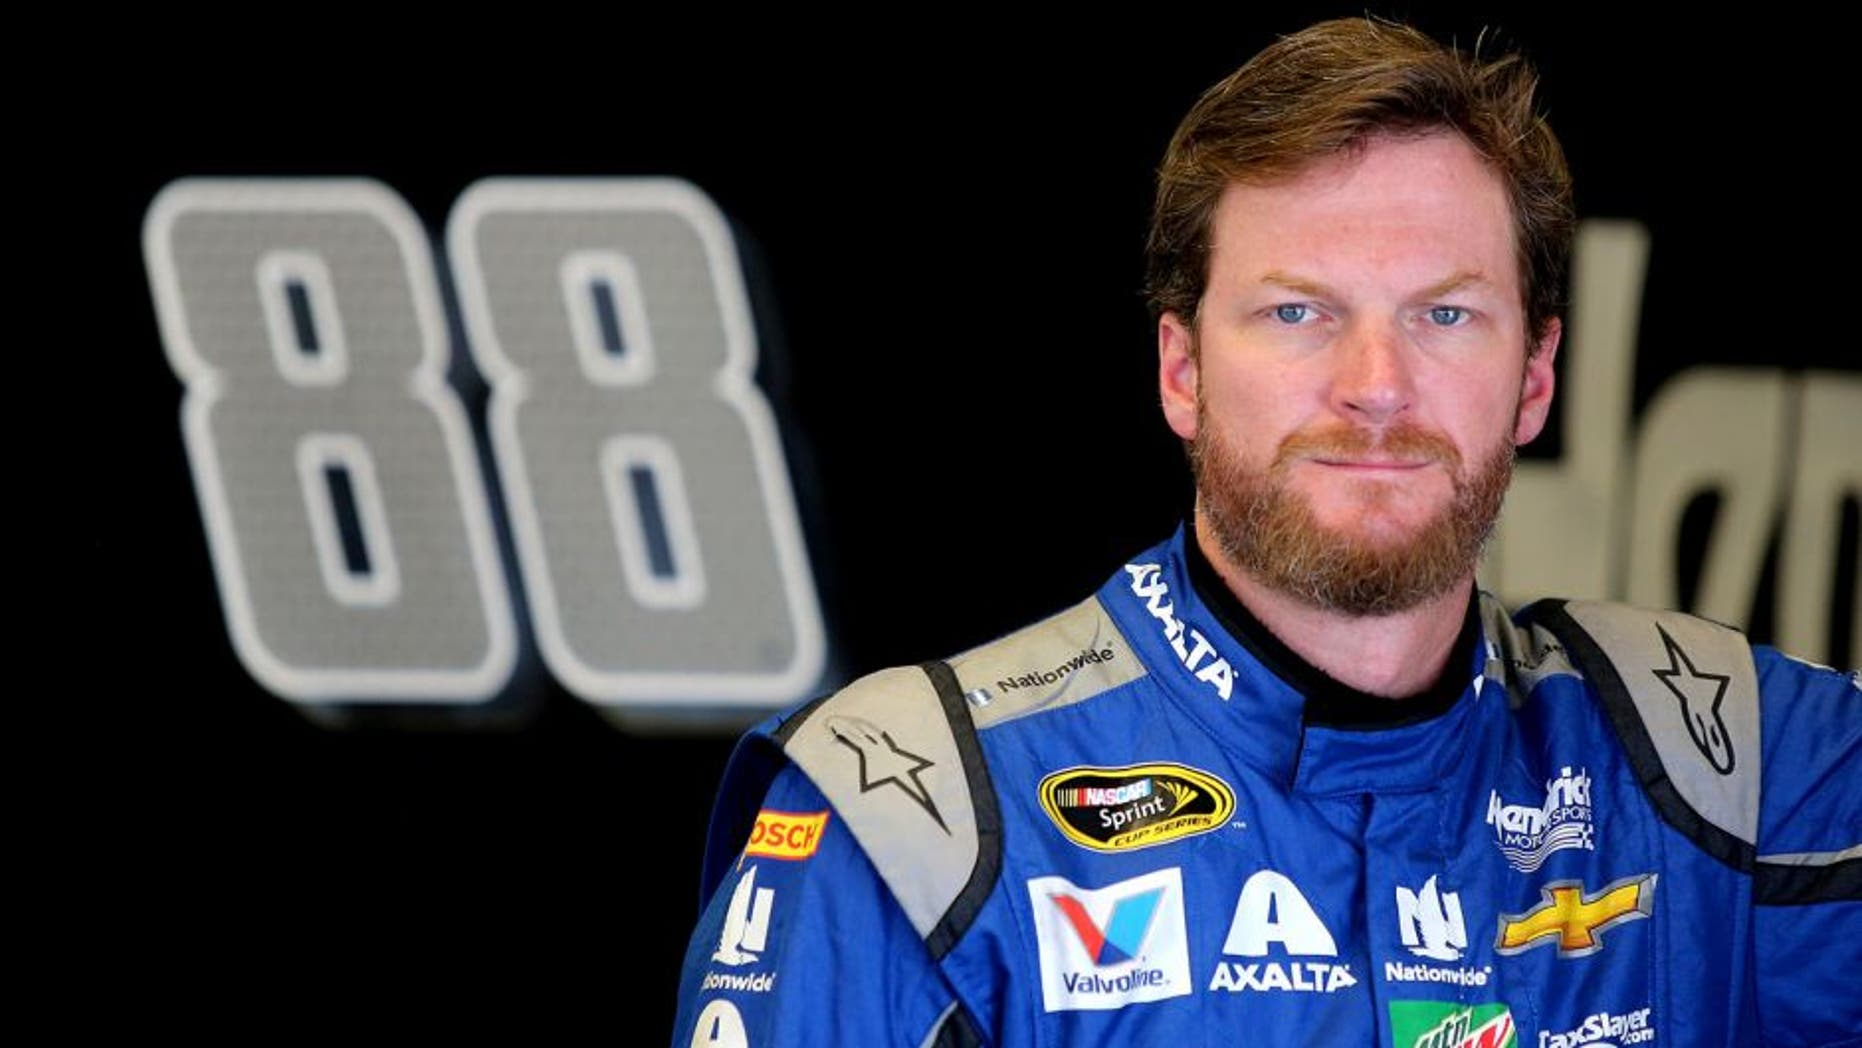 DAYTONA BEACH, FL - JUNE 30: Dale Earnhardt Jr., driver of the #88 Nationwide Chevrolet, stands in the garage area during practice for the NASCAR Sprint Cup Series Coke Zero 400 at Daytona International Speedway on June 30, 2016 in Daytona Beach, Florida. (Photo by Jerry Markland/Getty Images)